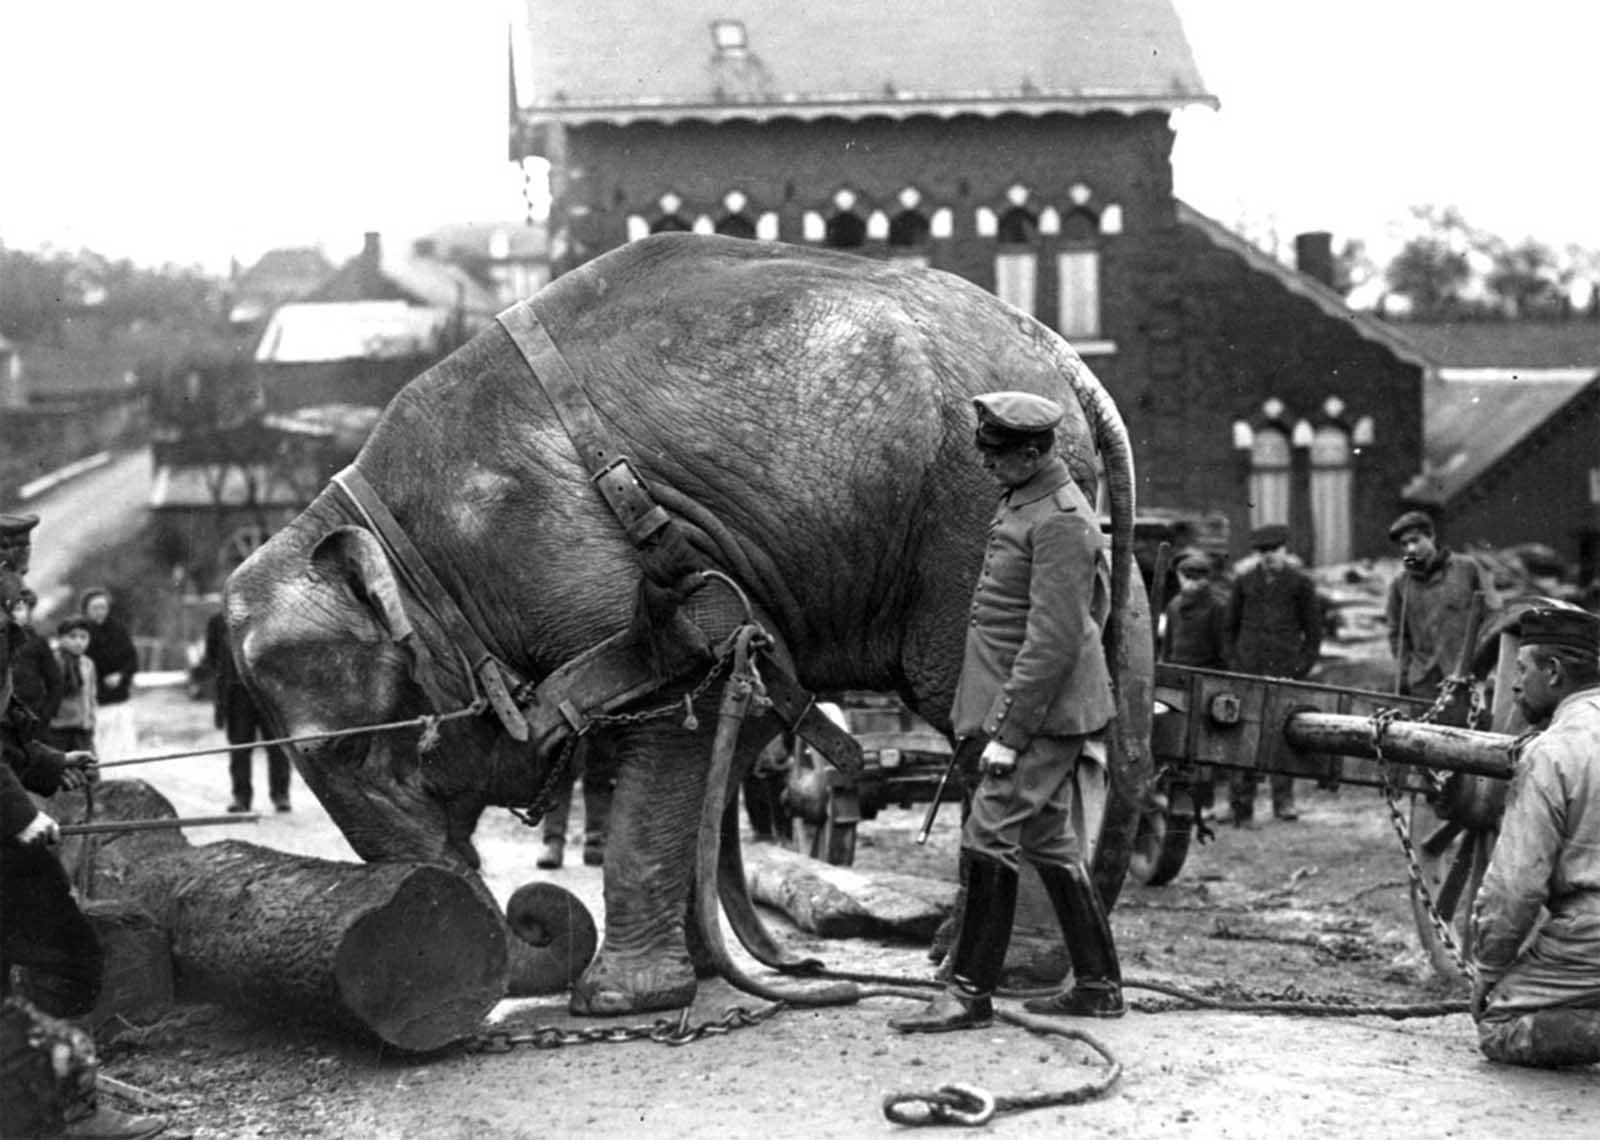 An Indian elephant, from the Hamburg Zoo, used by Germans in Valenciennes, France to help move tree trunks in 1915. As the war dragged on, beasts of burden became scarce in Germany, and some circus and zoo animals were requisitioned for army use.